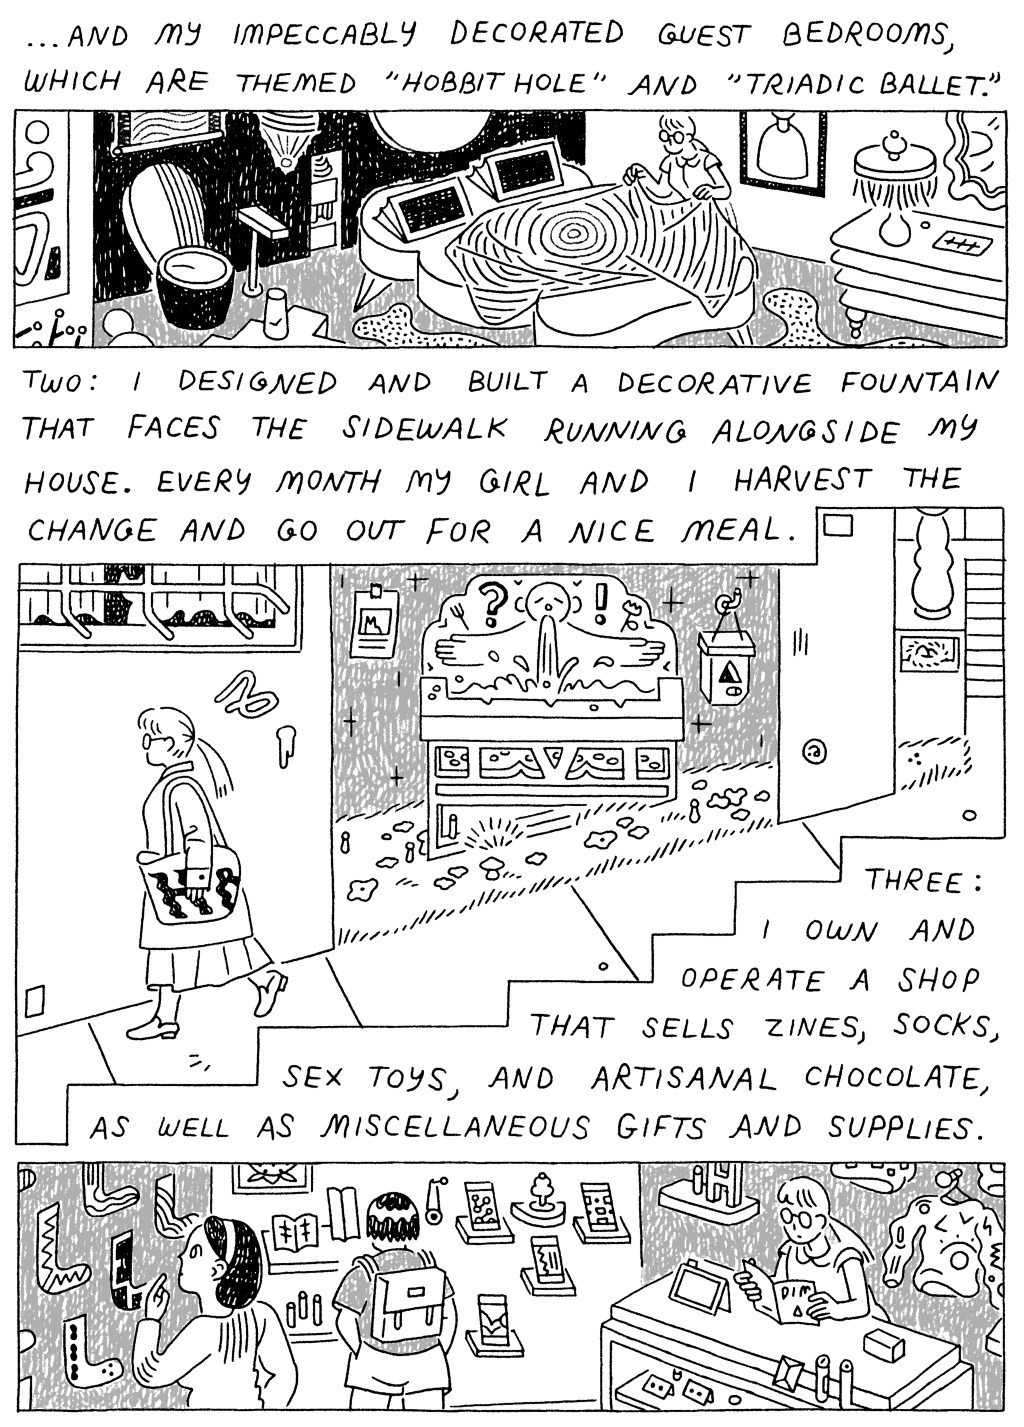 """Panel 1: (Woman, making bed in eccentrically decorated room.) ...And my impeccably decorated guest bedrooms, which are themed """"Hobbit Hole"""" and """"Triadic Ballet.""""   Panel 2:  (Woman, walking by fountain.) Two: I designed and built a decorative fountain that faces the sidewalk running alongside my house. Every month, my girl and I harvest the change and go out for a nice meal.   Panel 3:  (Woman, at the cashier's desk of a gift shop.) Three: I own and operate a shop that sells zines, socks, sex toys, and artisanal chocolates, as well as miscellaneous gifts and supplies."""